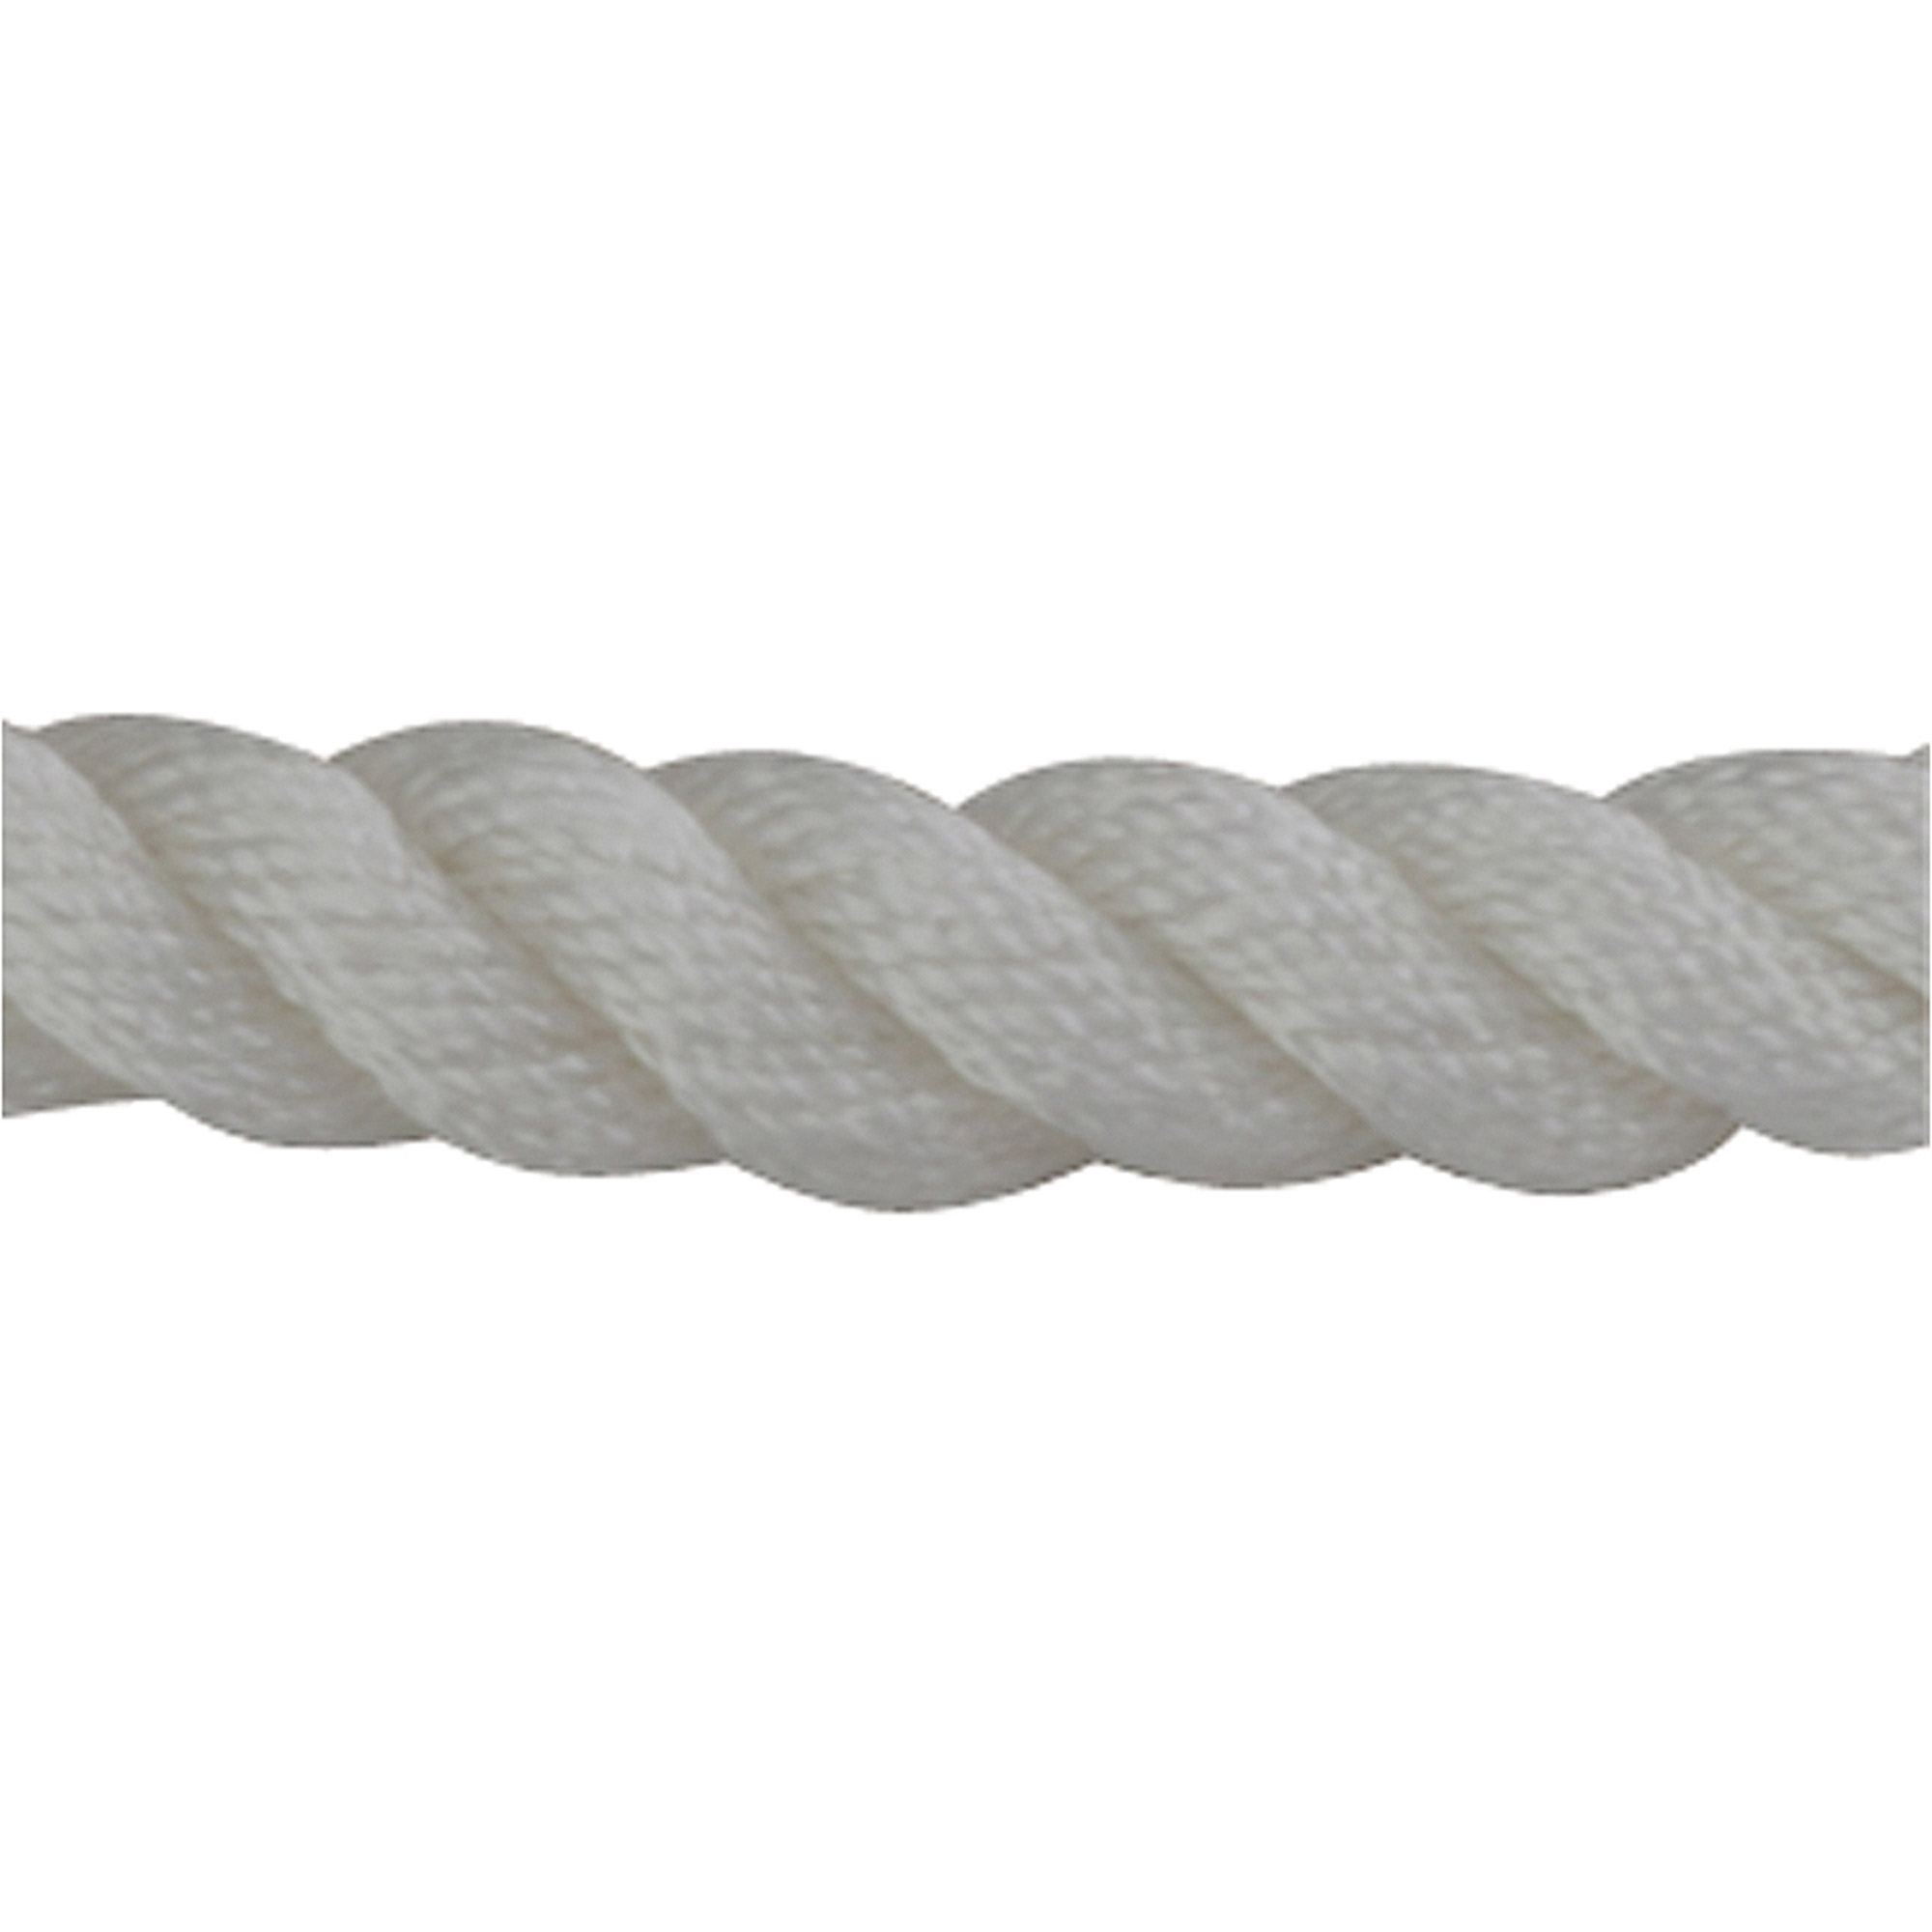 "Sea Dog Dock Line, Twisted Nylon, 3 8"" x 10', White by Sea Dog"